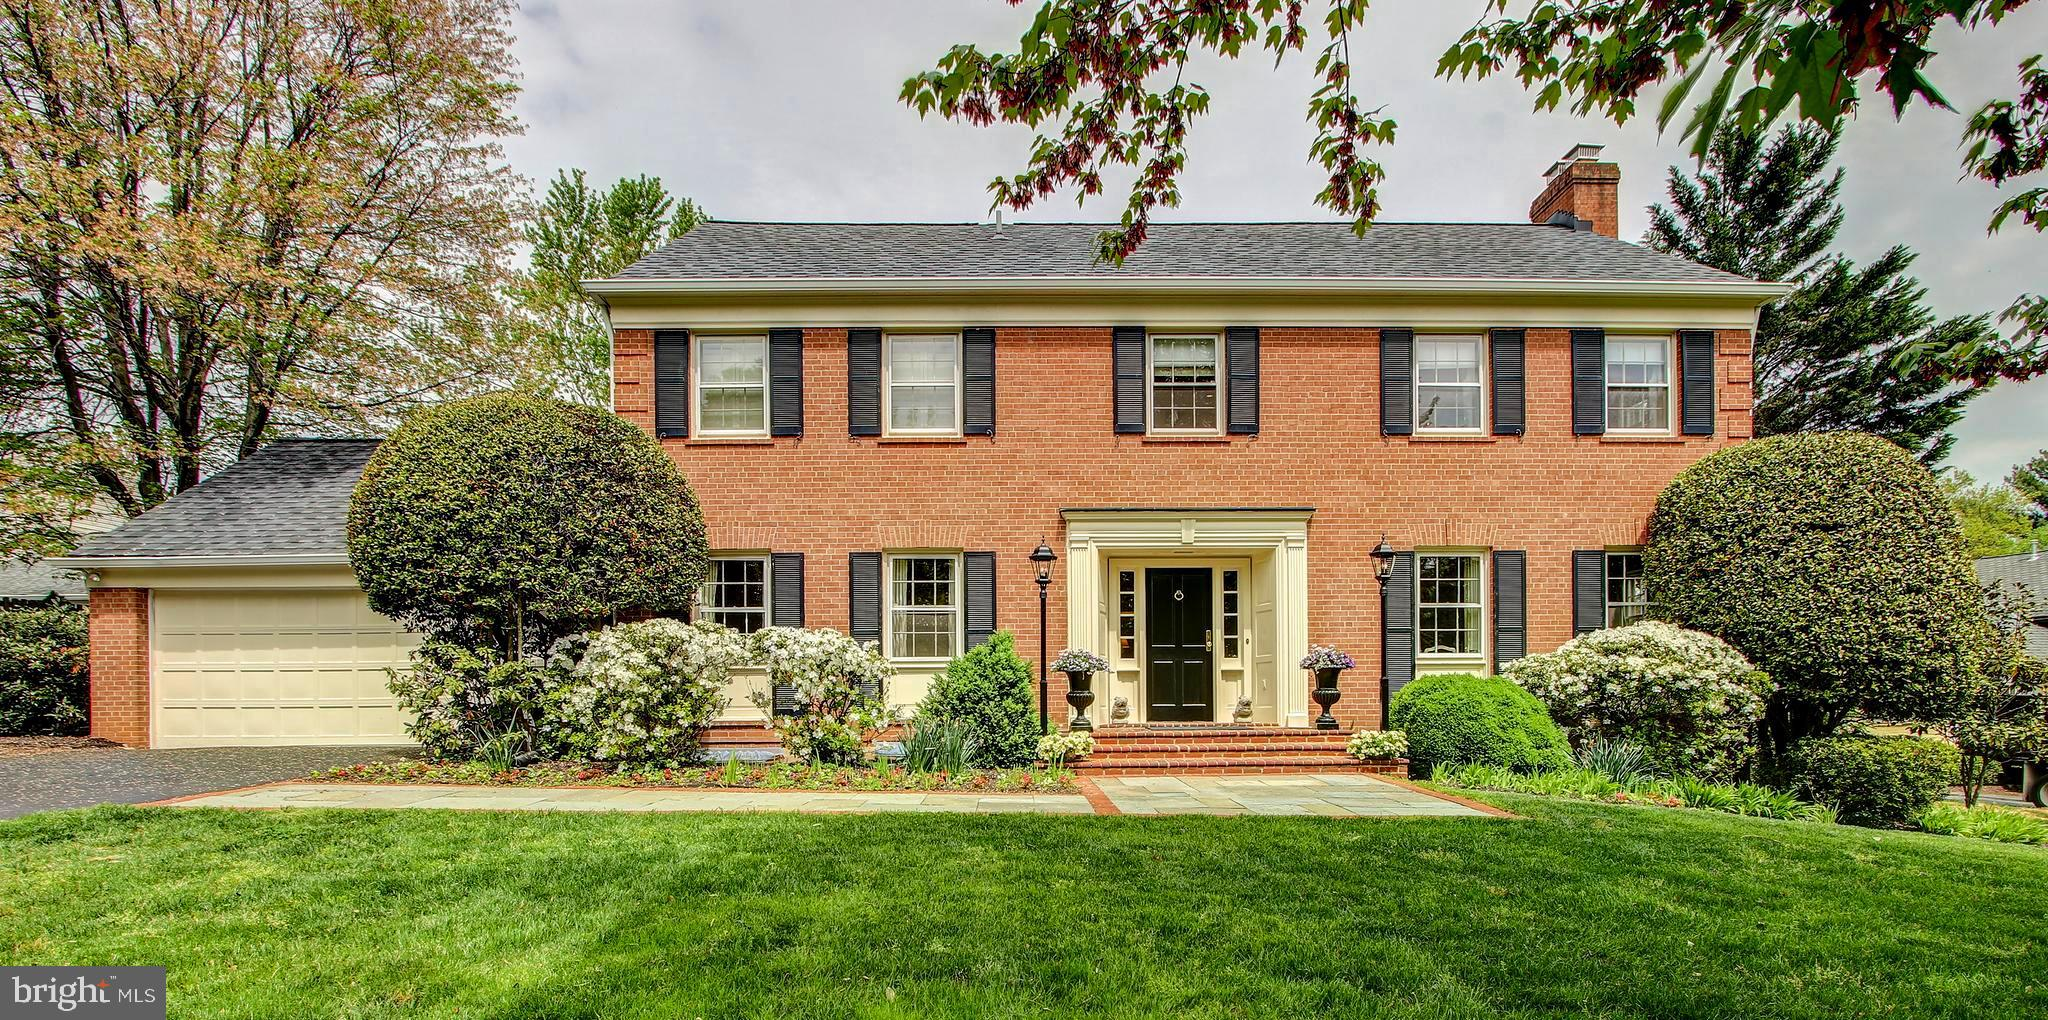 8521 WARDE TERRACE, POTOMAC, MD 20854